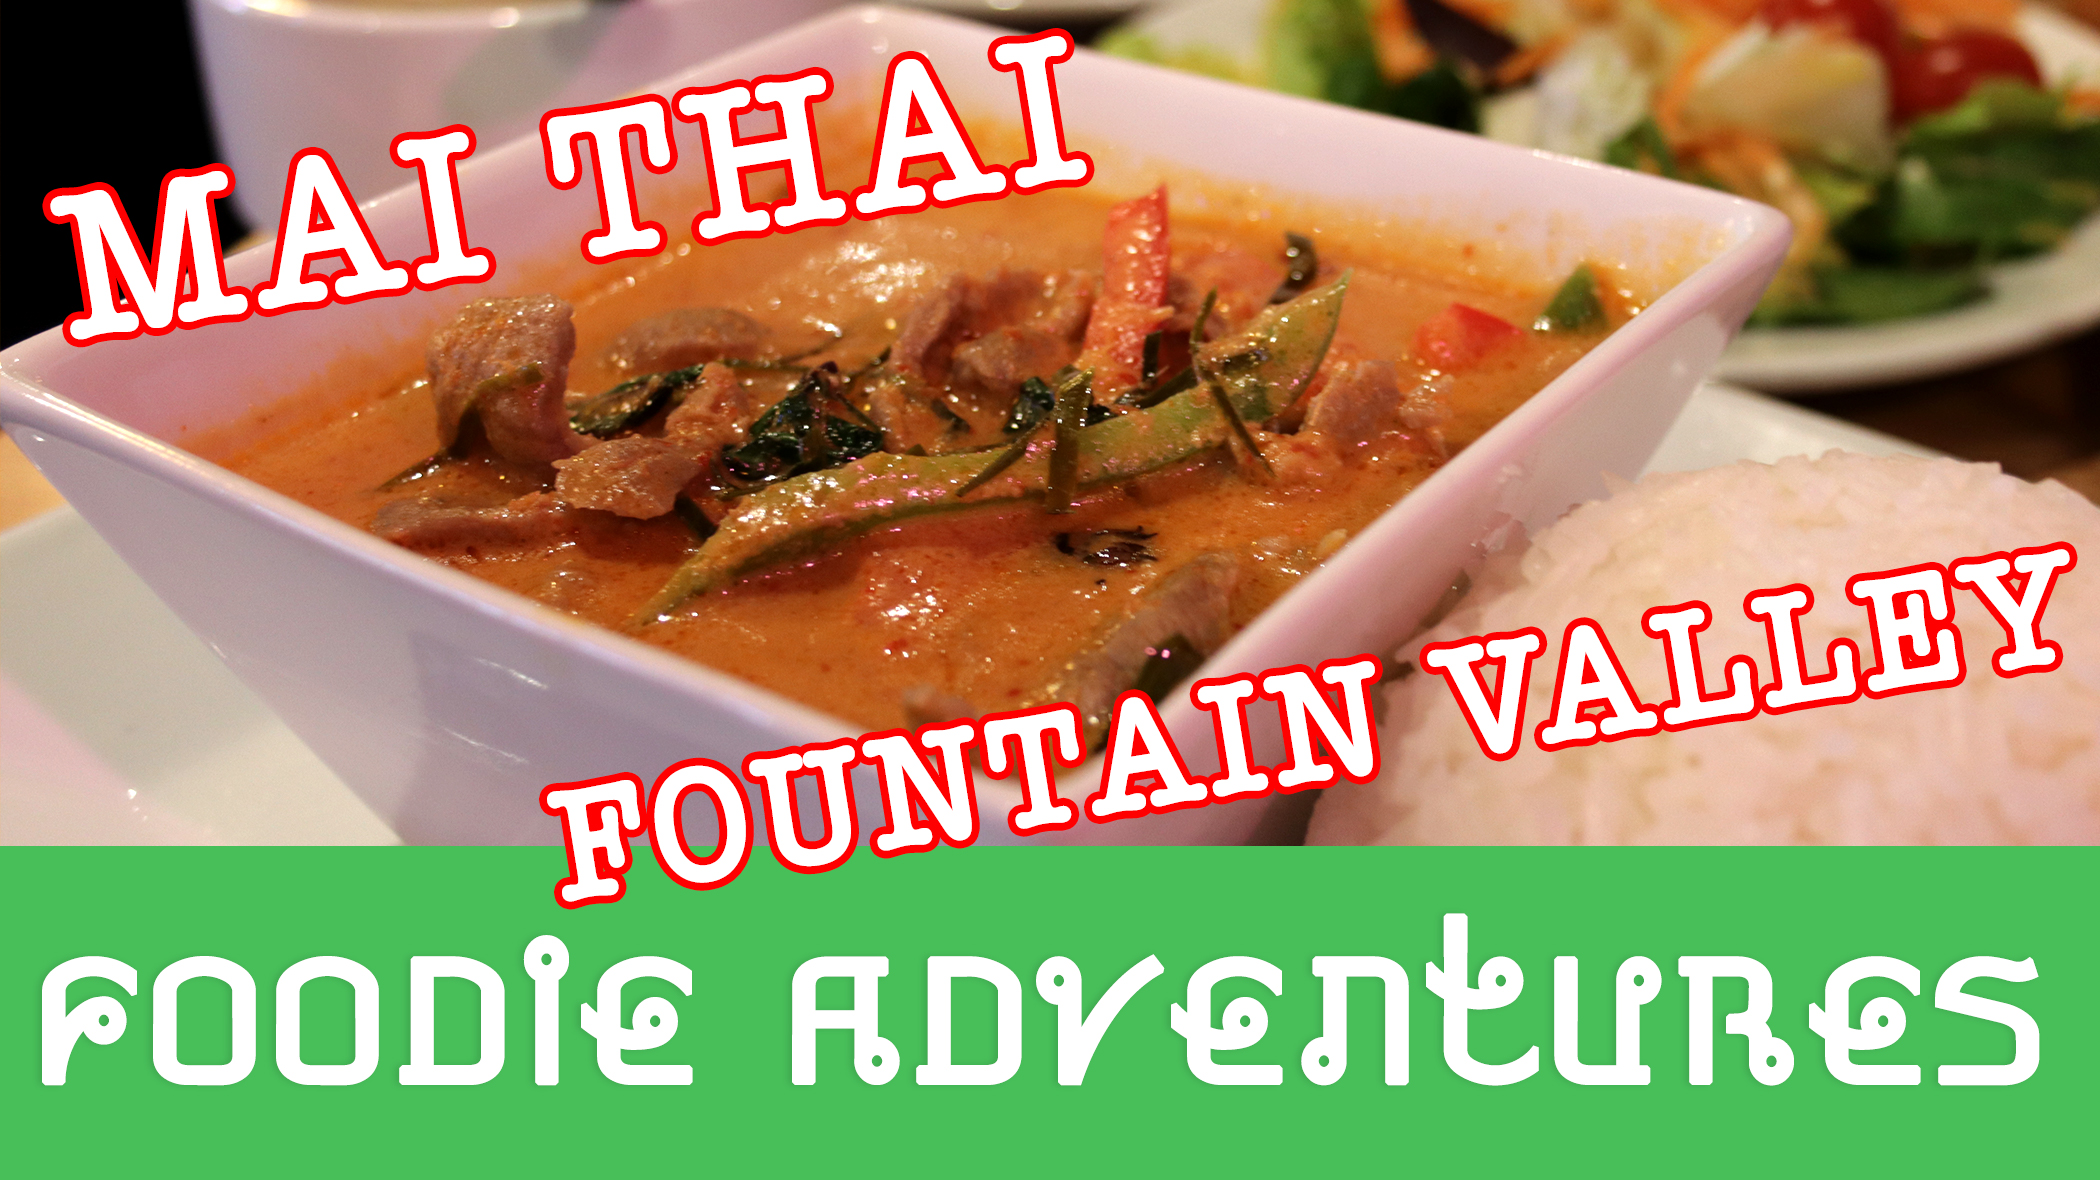 Cover photo for the blog post about Mai Thai in Fountain Valley